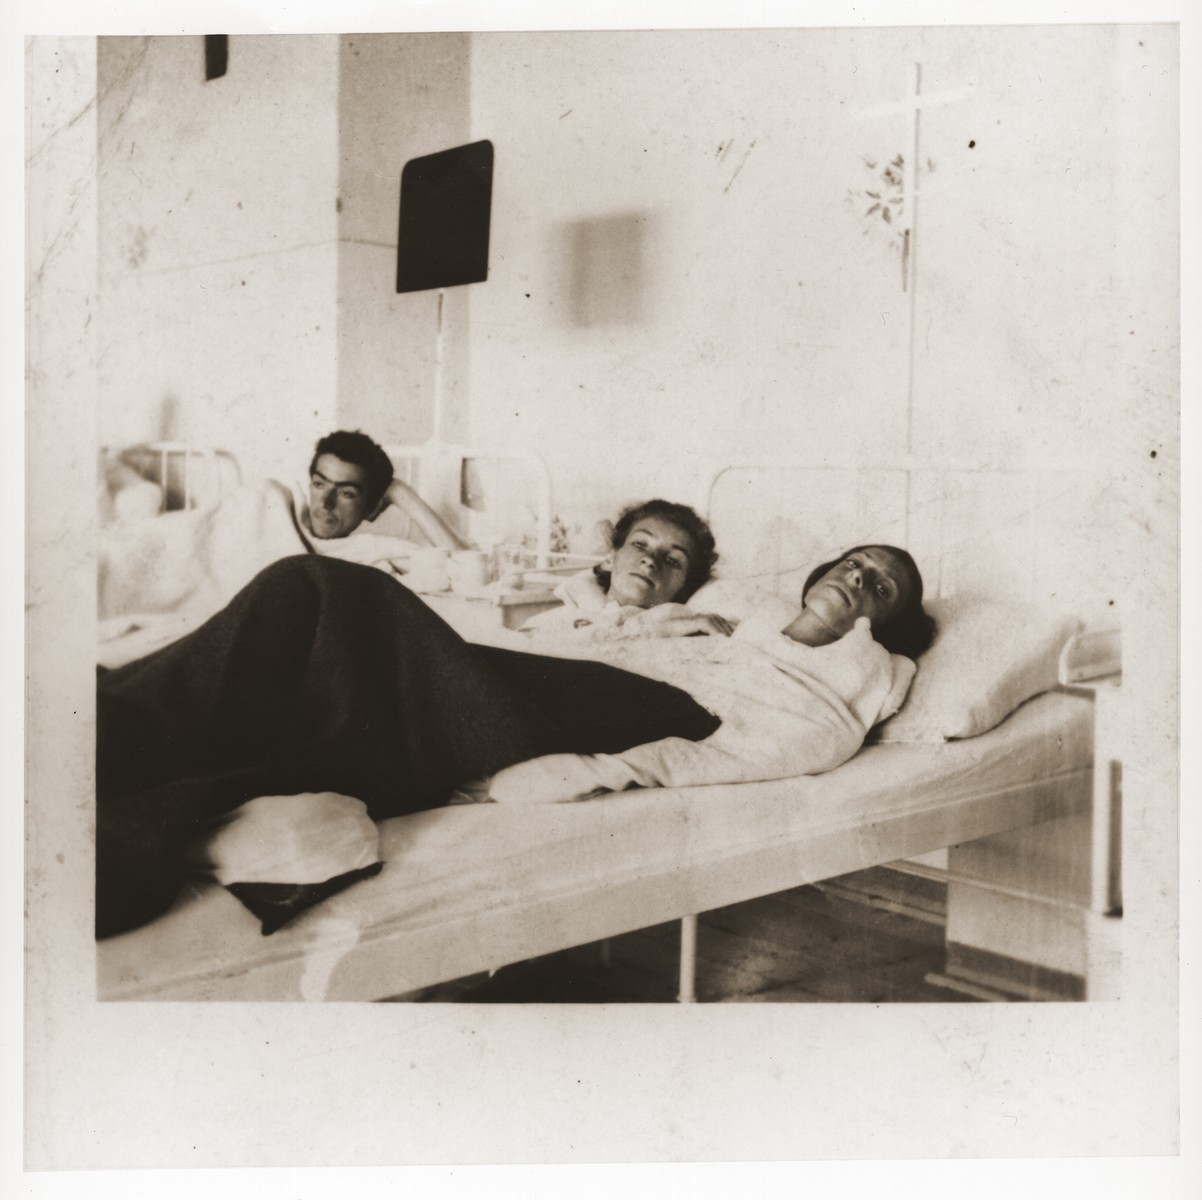 Three Jewish women in a hospital provided by American troops.  The women are survivors of a death march from Helmbrechts that ended in Volary.  Among those pictured is Rozia Epsztajn (center).